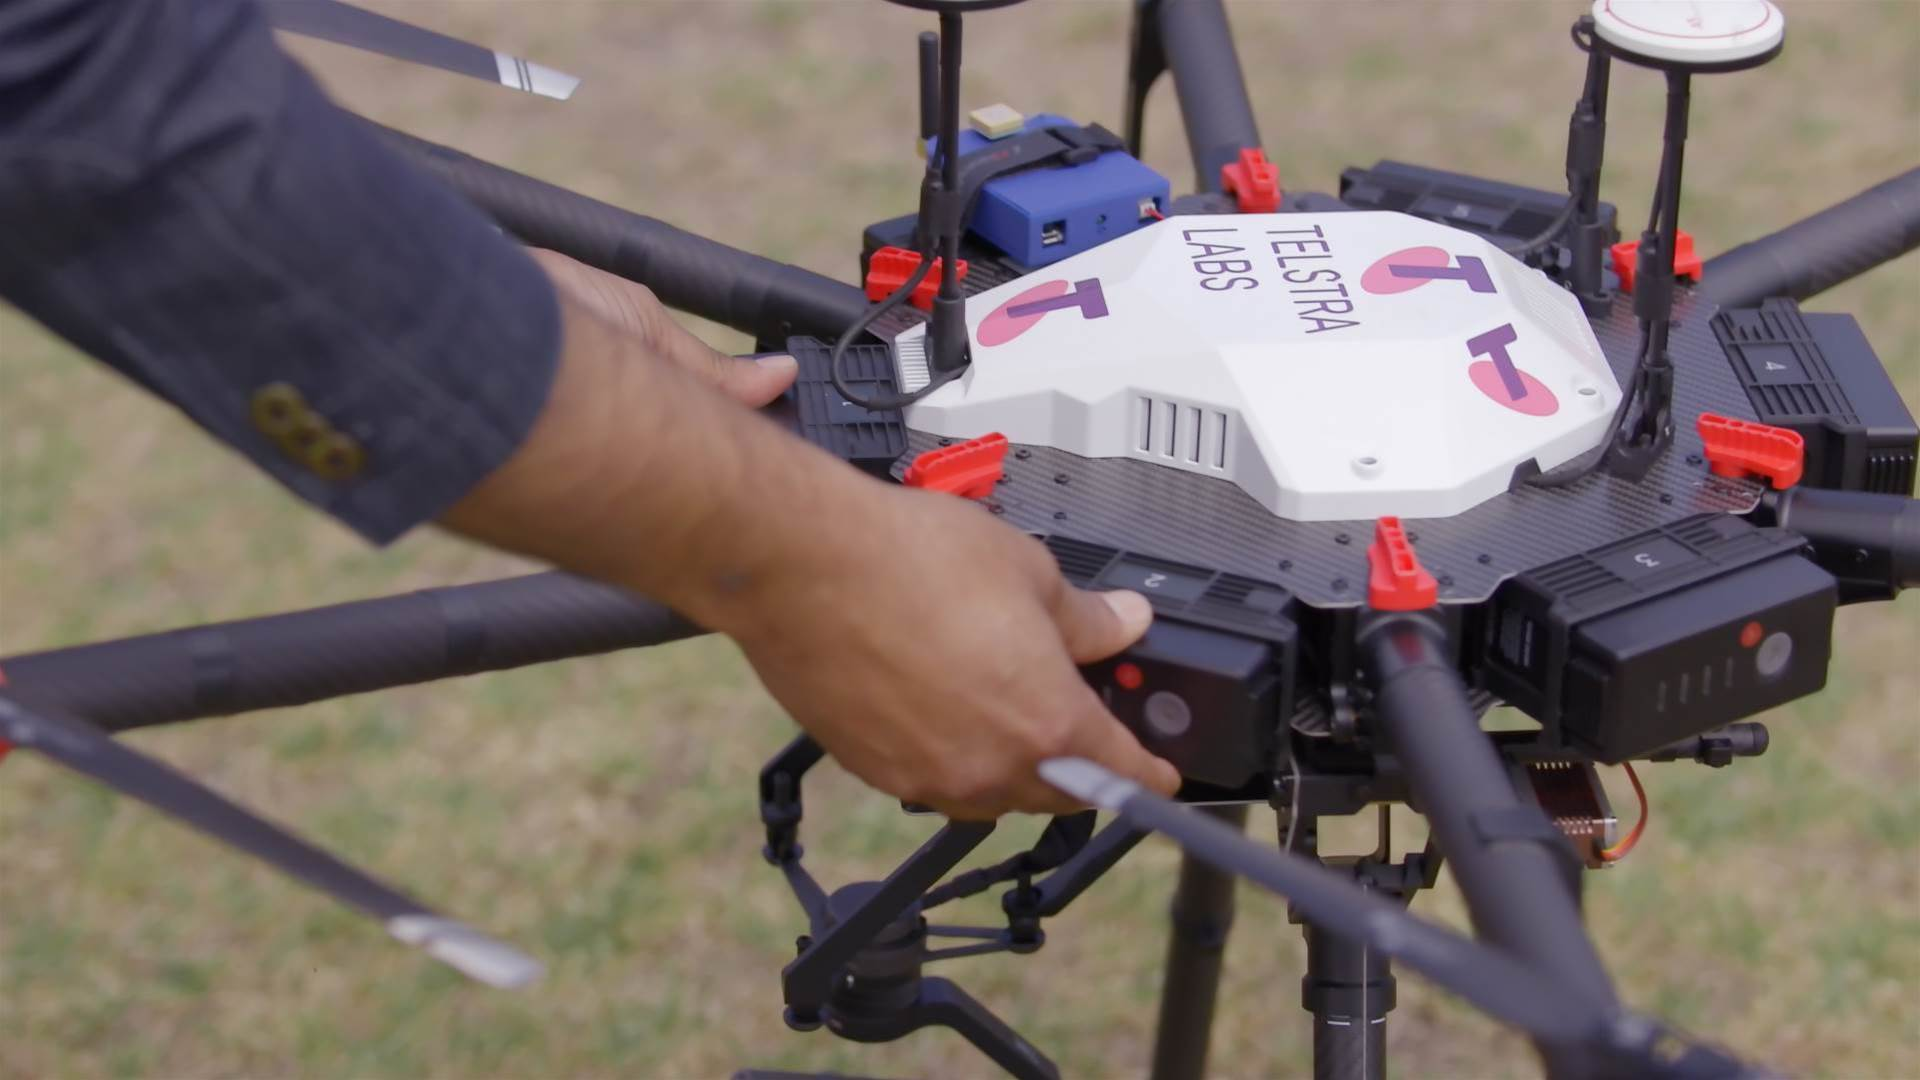 Telstra, Thales collaborate on drone management platform